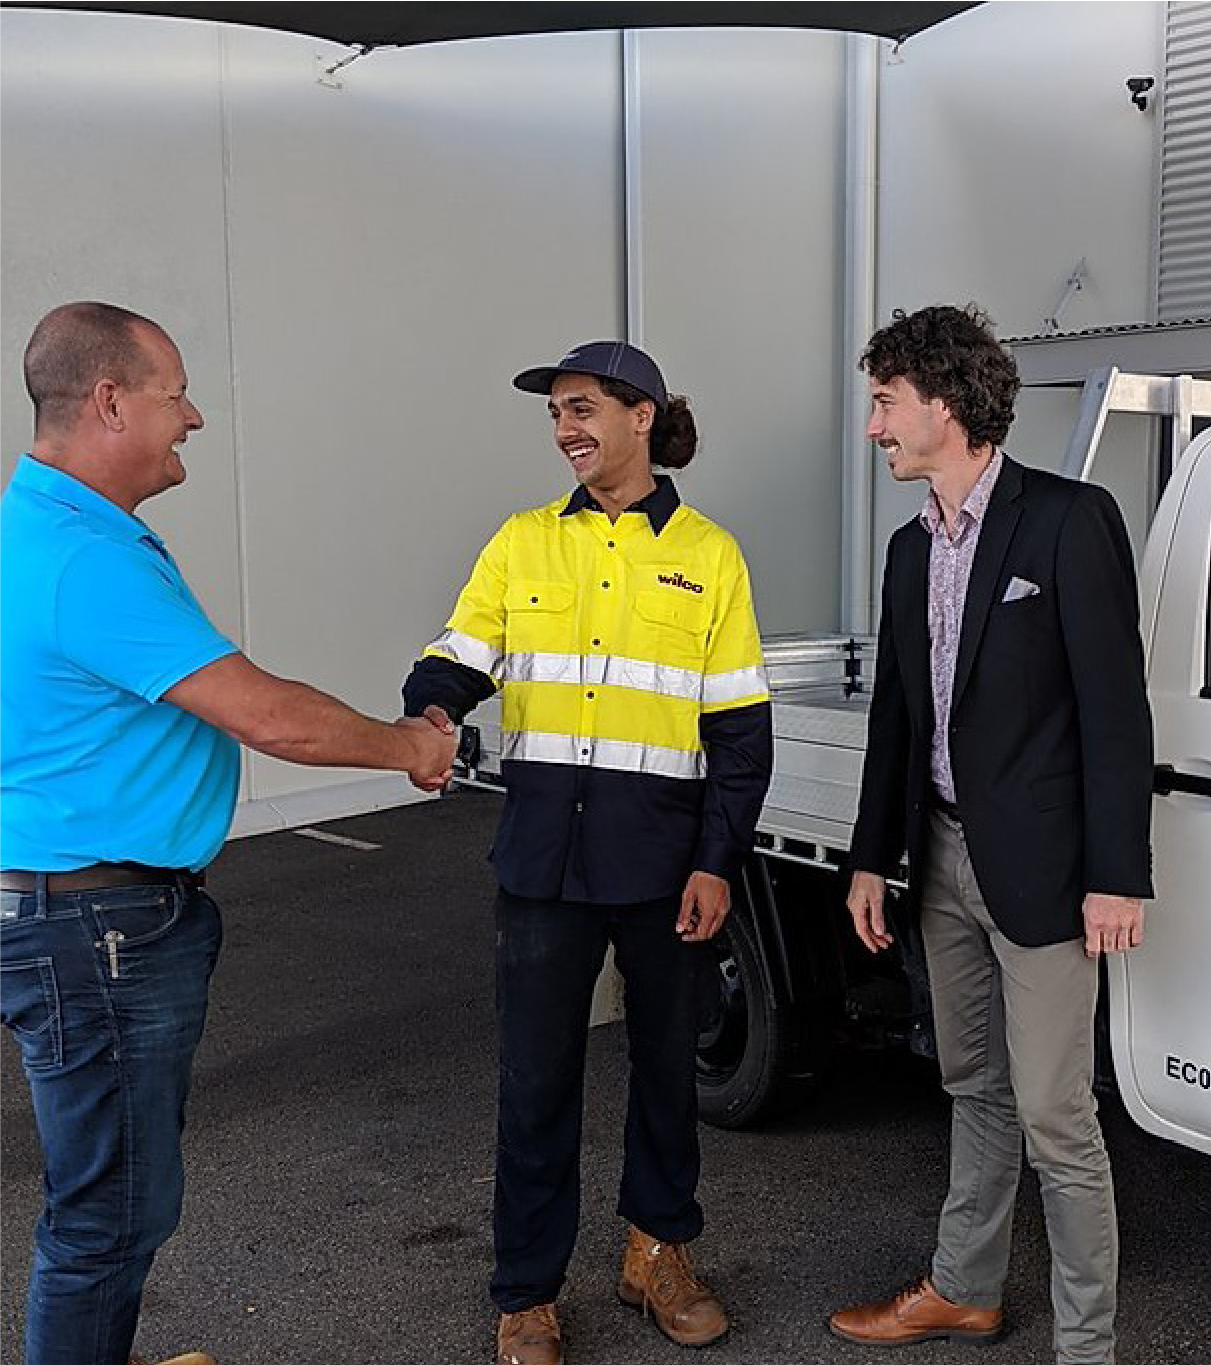 20 Aboriginal Apprentices by 2020 Commitment